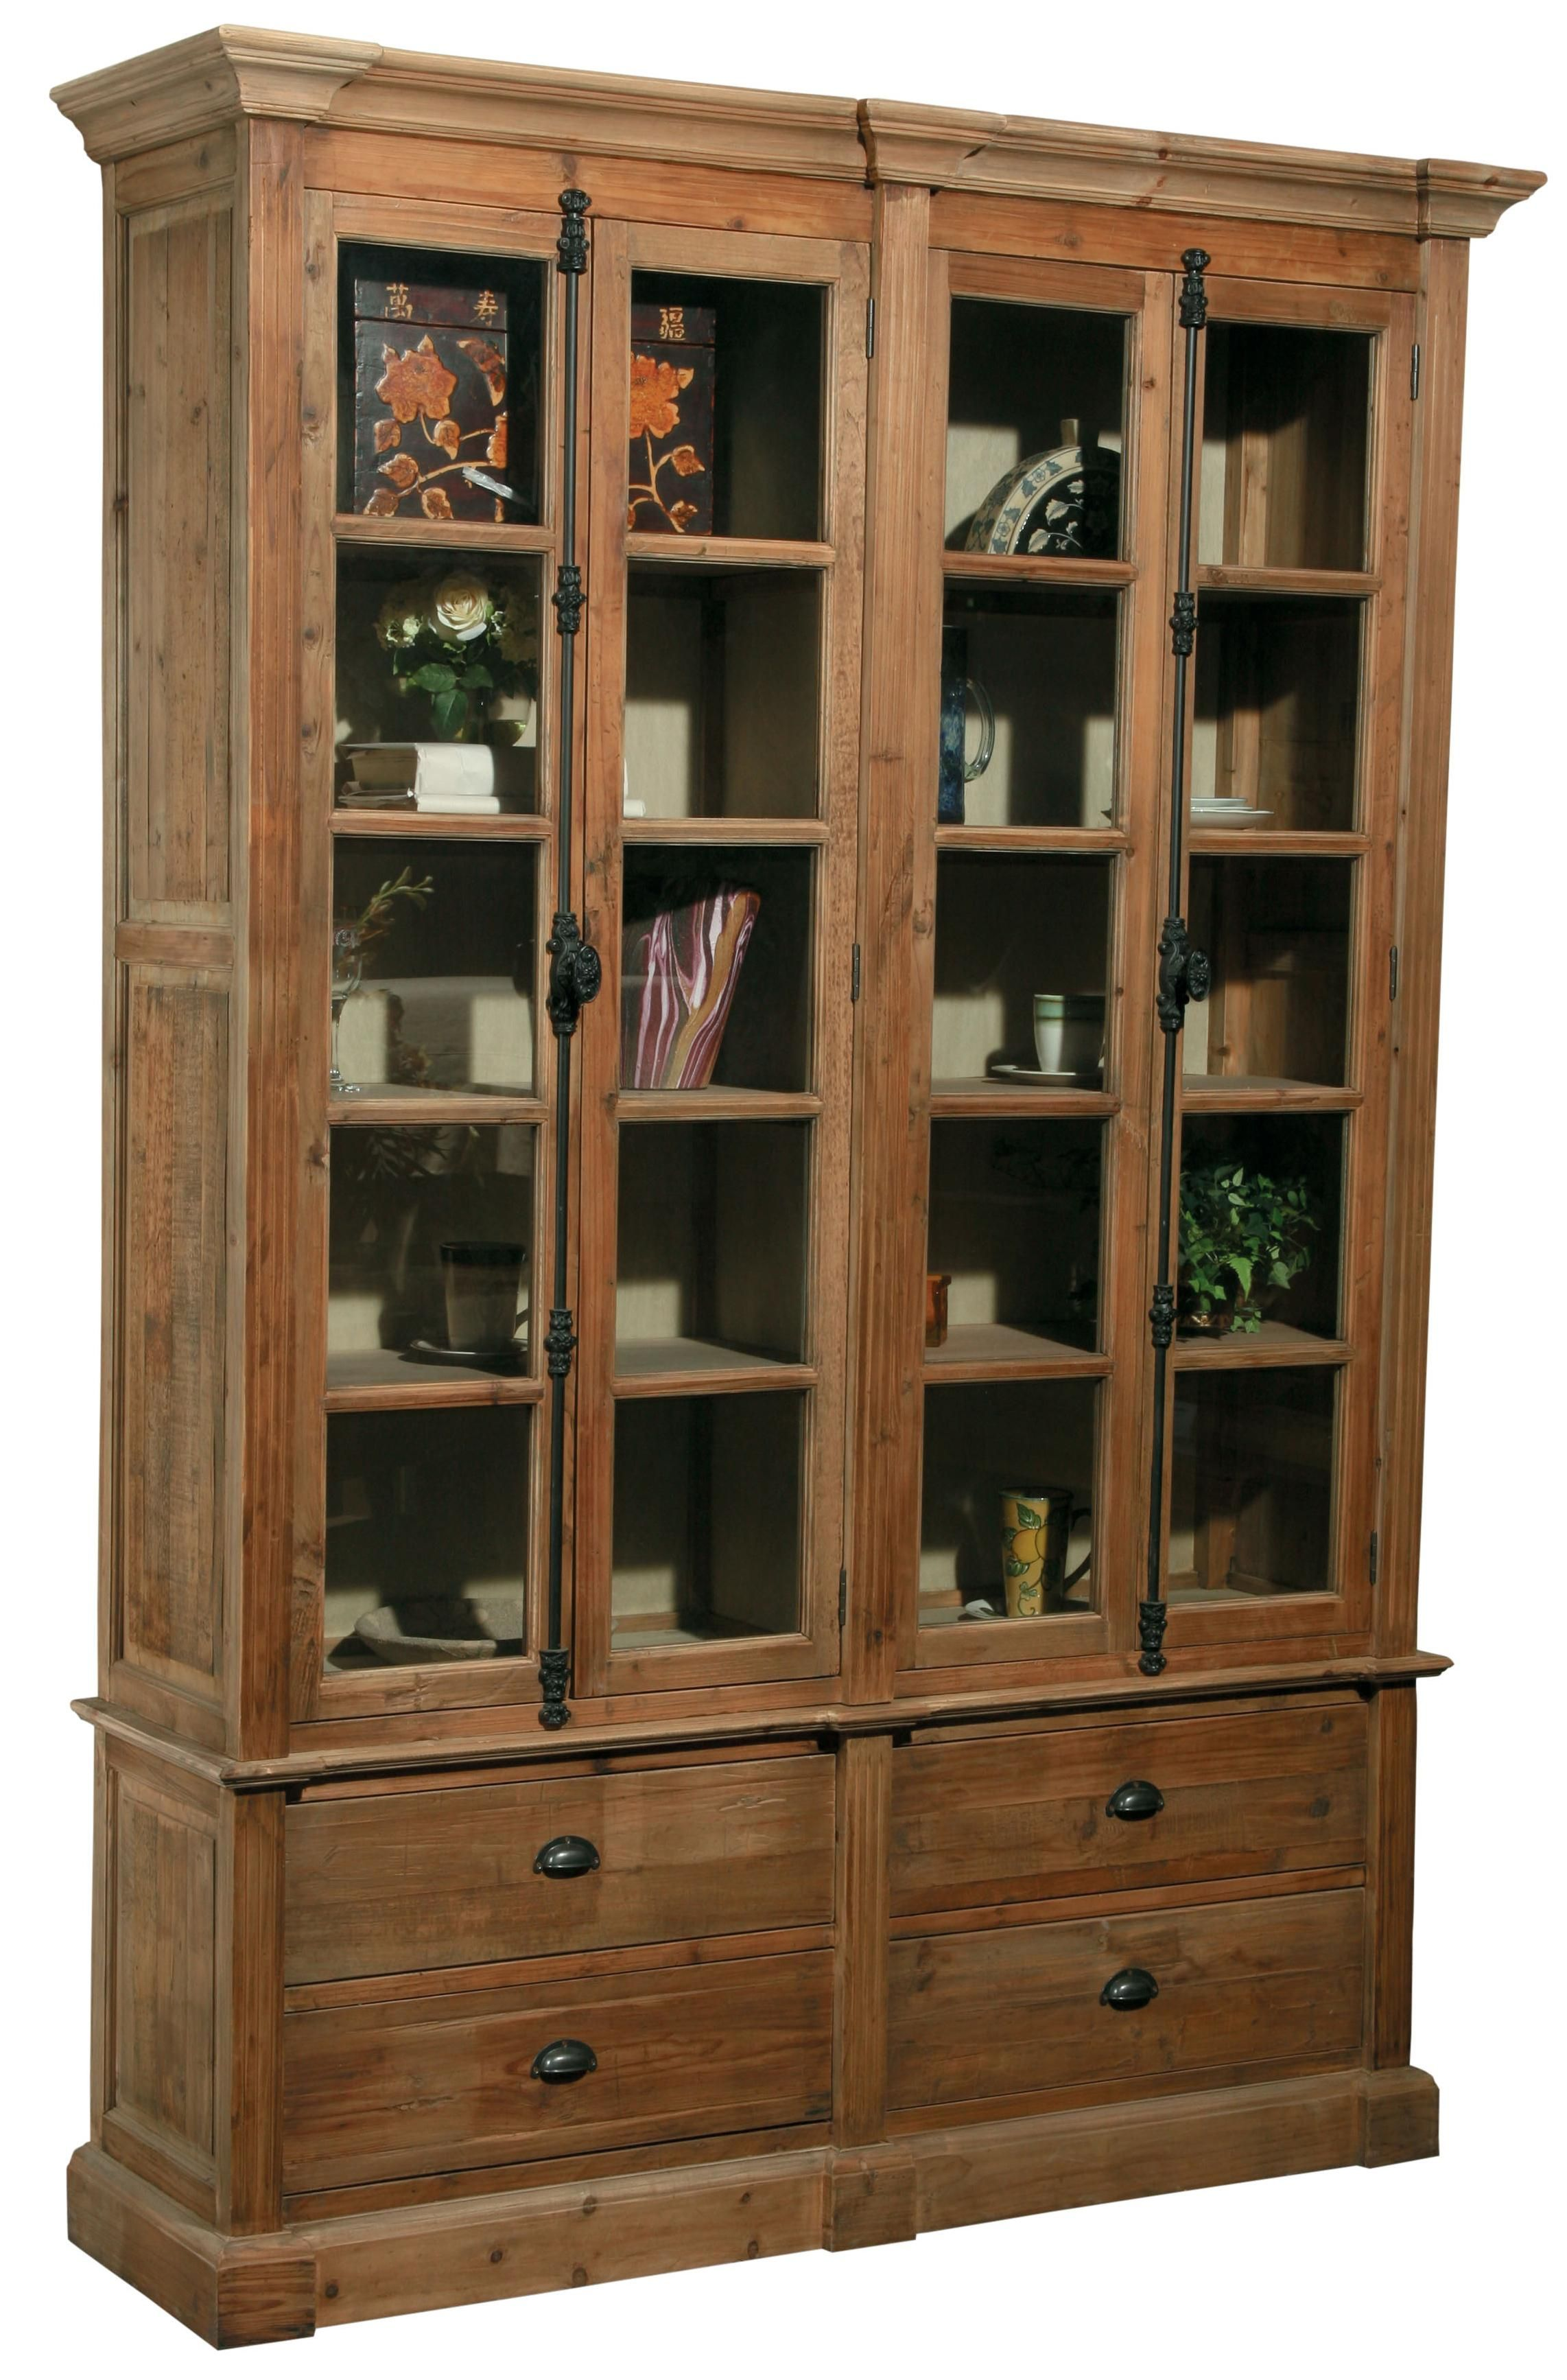 This bookcase is made of reclaimed pine and has a wonderful warm